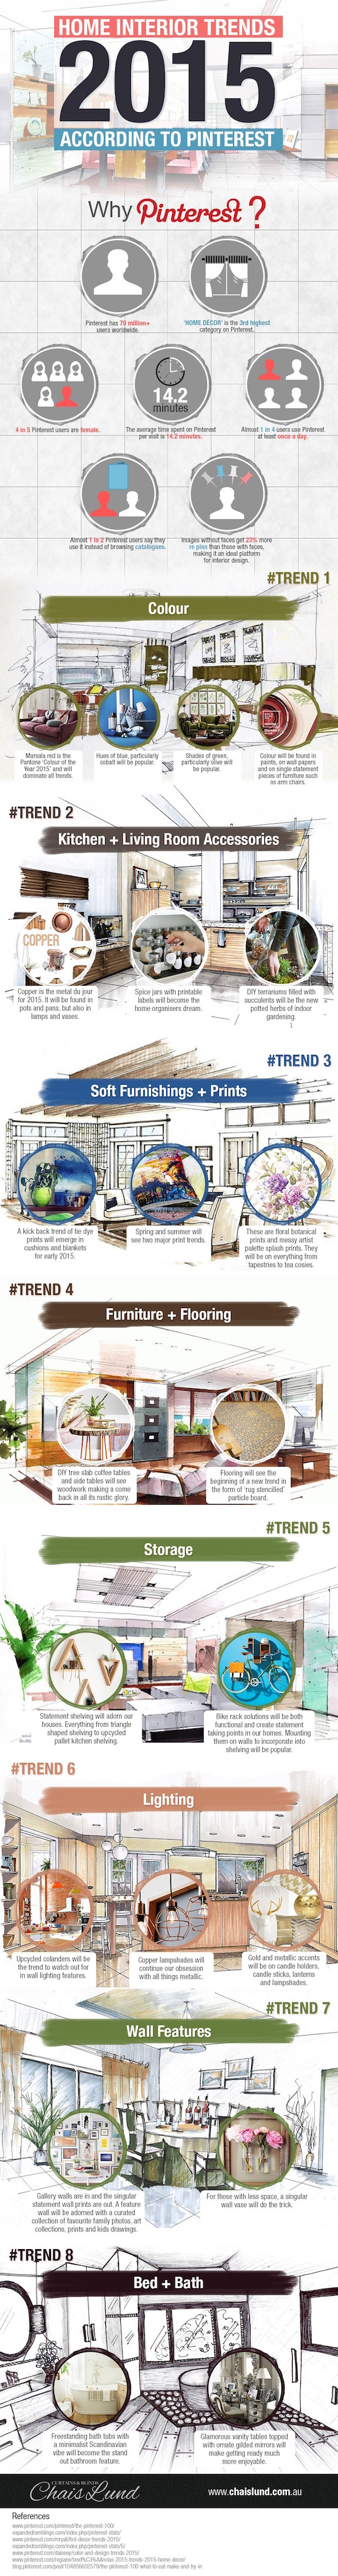 Chais Lund, infographic, reader submitted content, Pinterest, home decor,